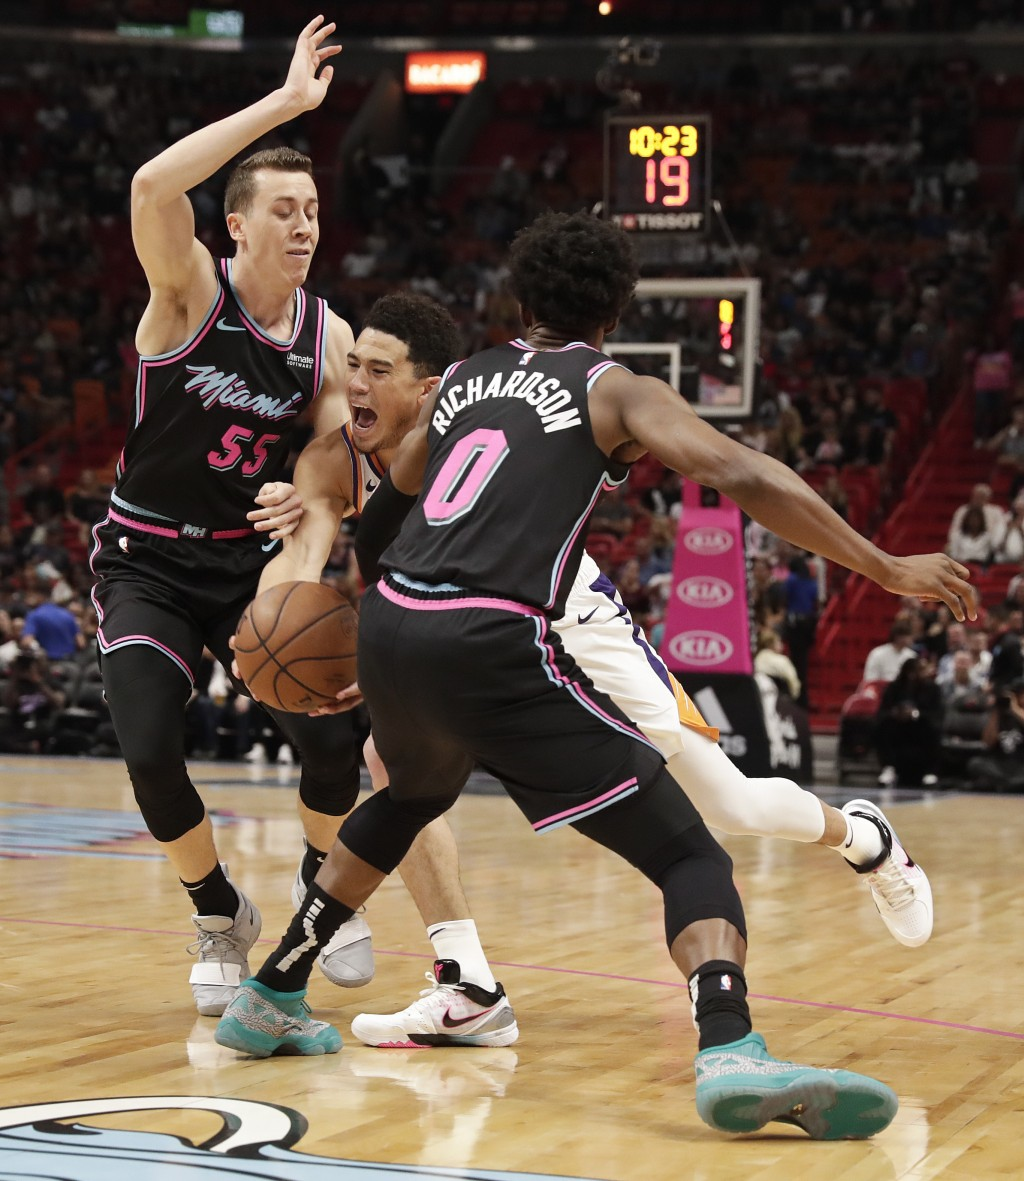 Phoenix Suns guard Devin Booker, center, pushes through Miami Heat forward Duncan Robinson (55) and guard Josh Richardson (0) during the first half of